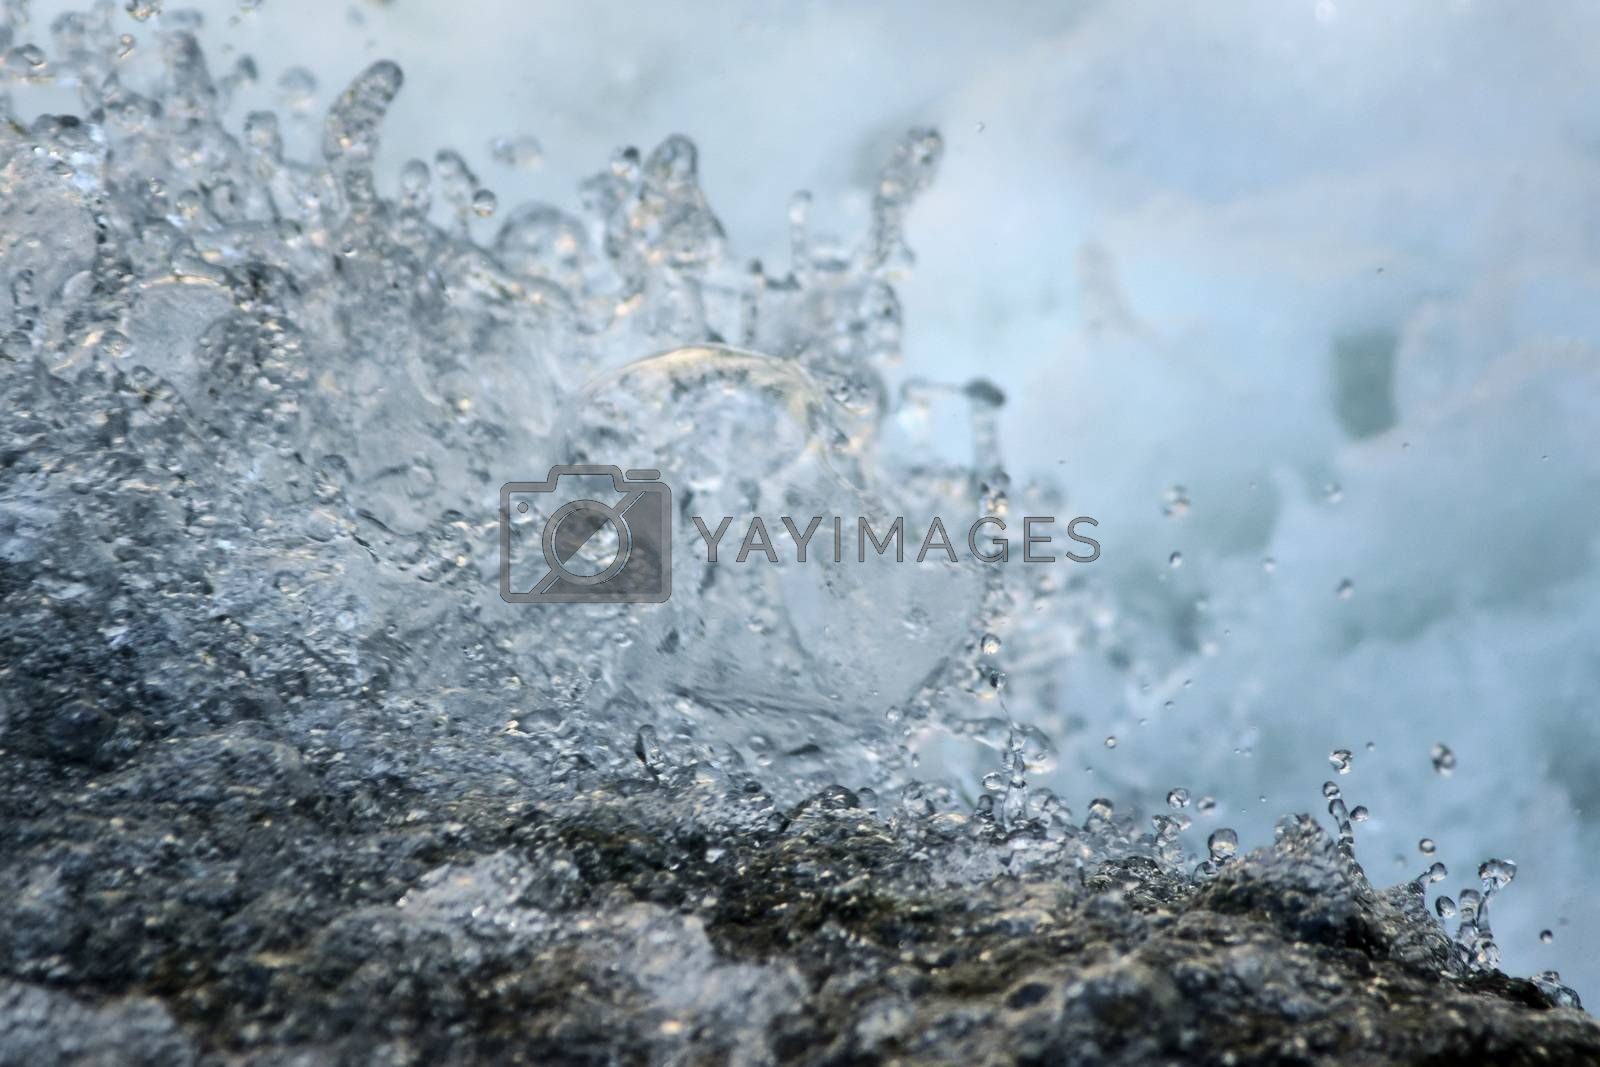 Royalty free image of Clear, fresh stream of water splattering in a natural creek. Environmental, water conservation concept. by hernan_hyper